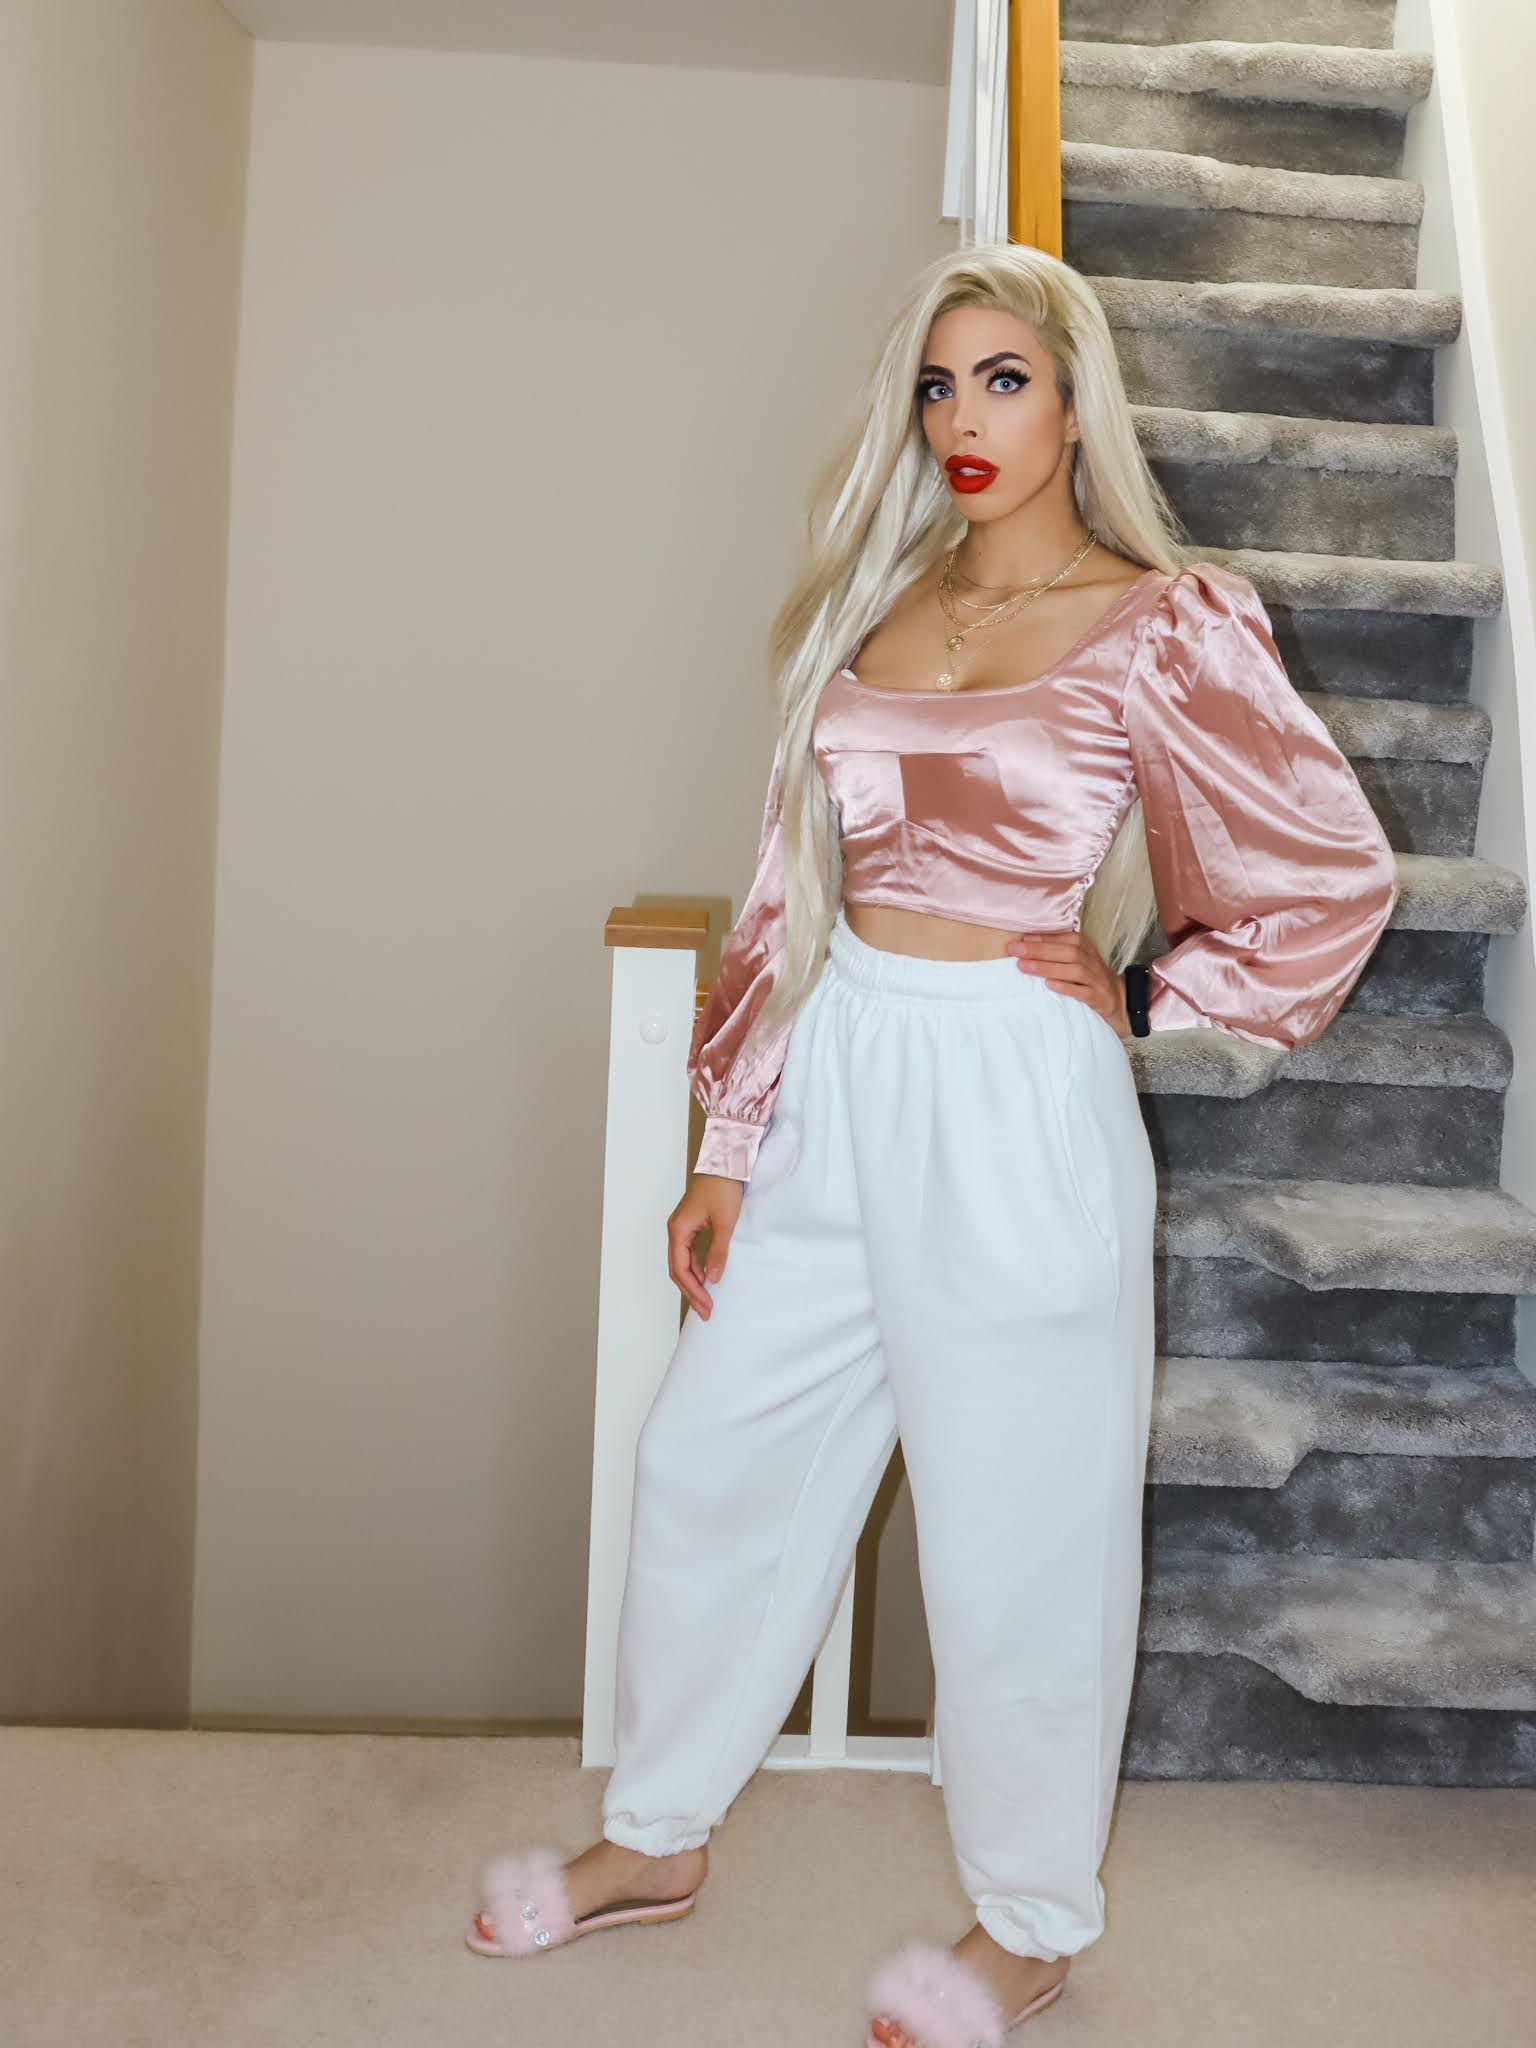 The Femme Luxe White Cuffed Joggers in model Lizzie